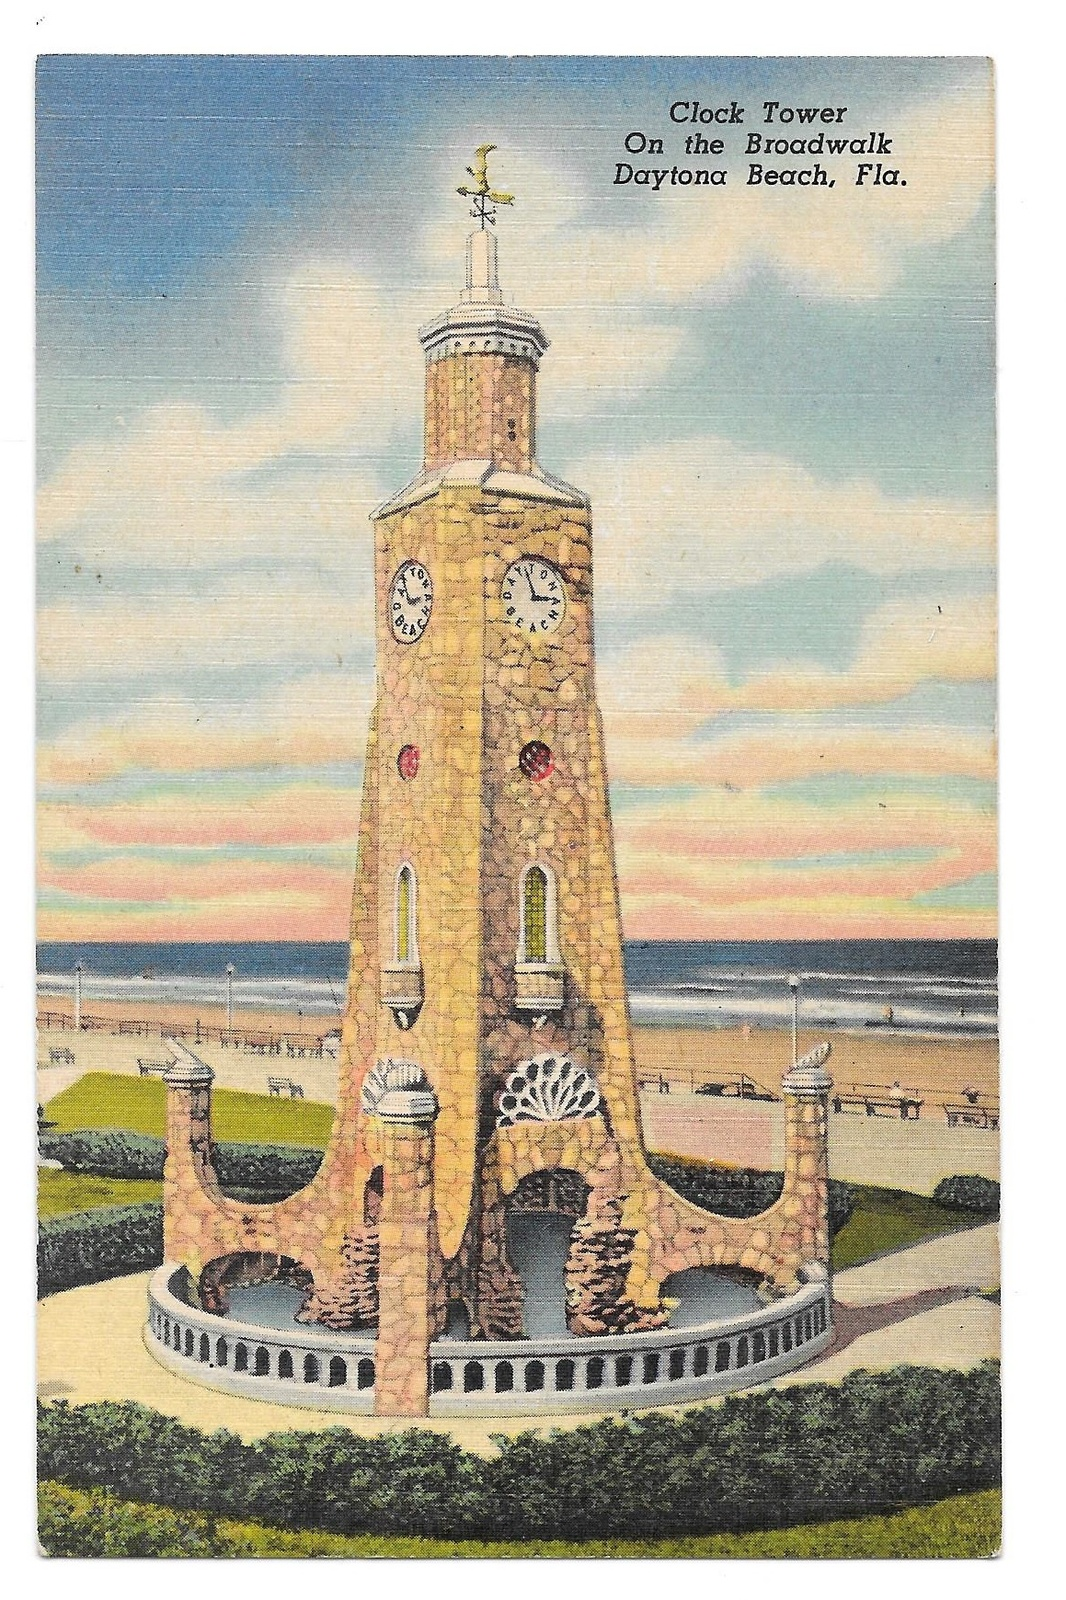 99 br 1925 1bx fl daytona beach clock tower linen